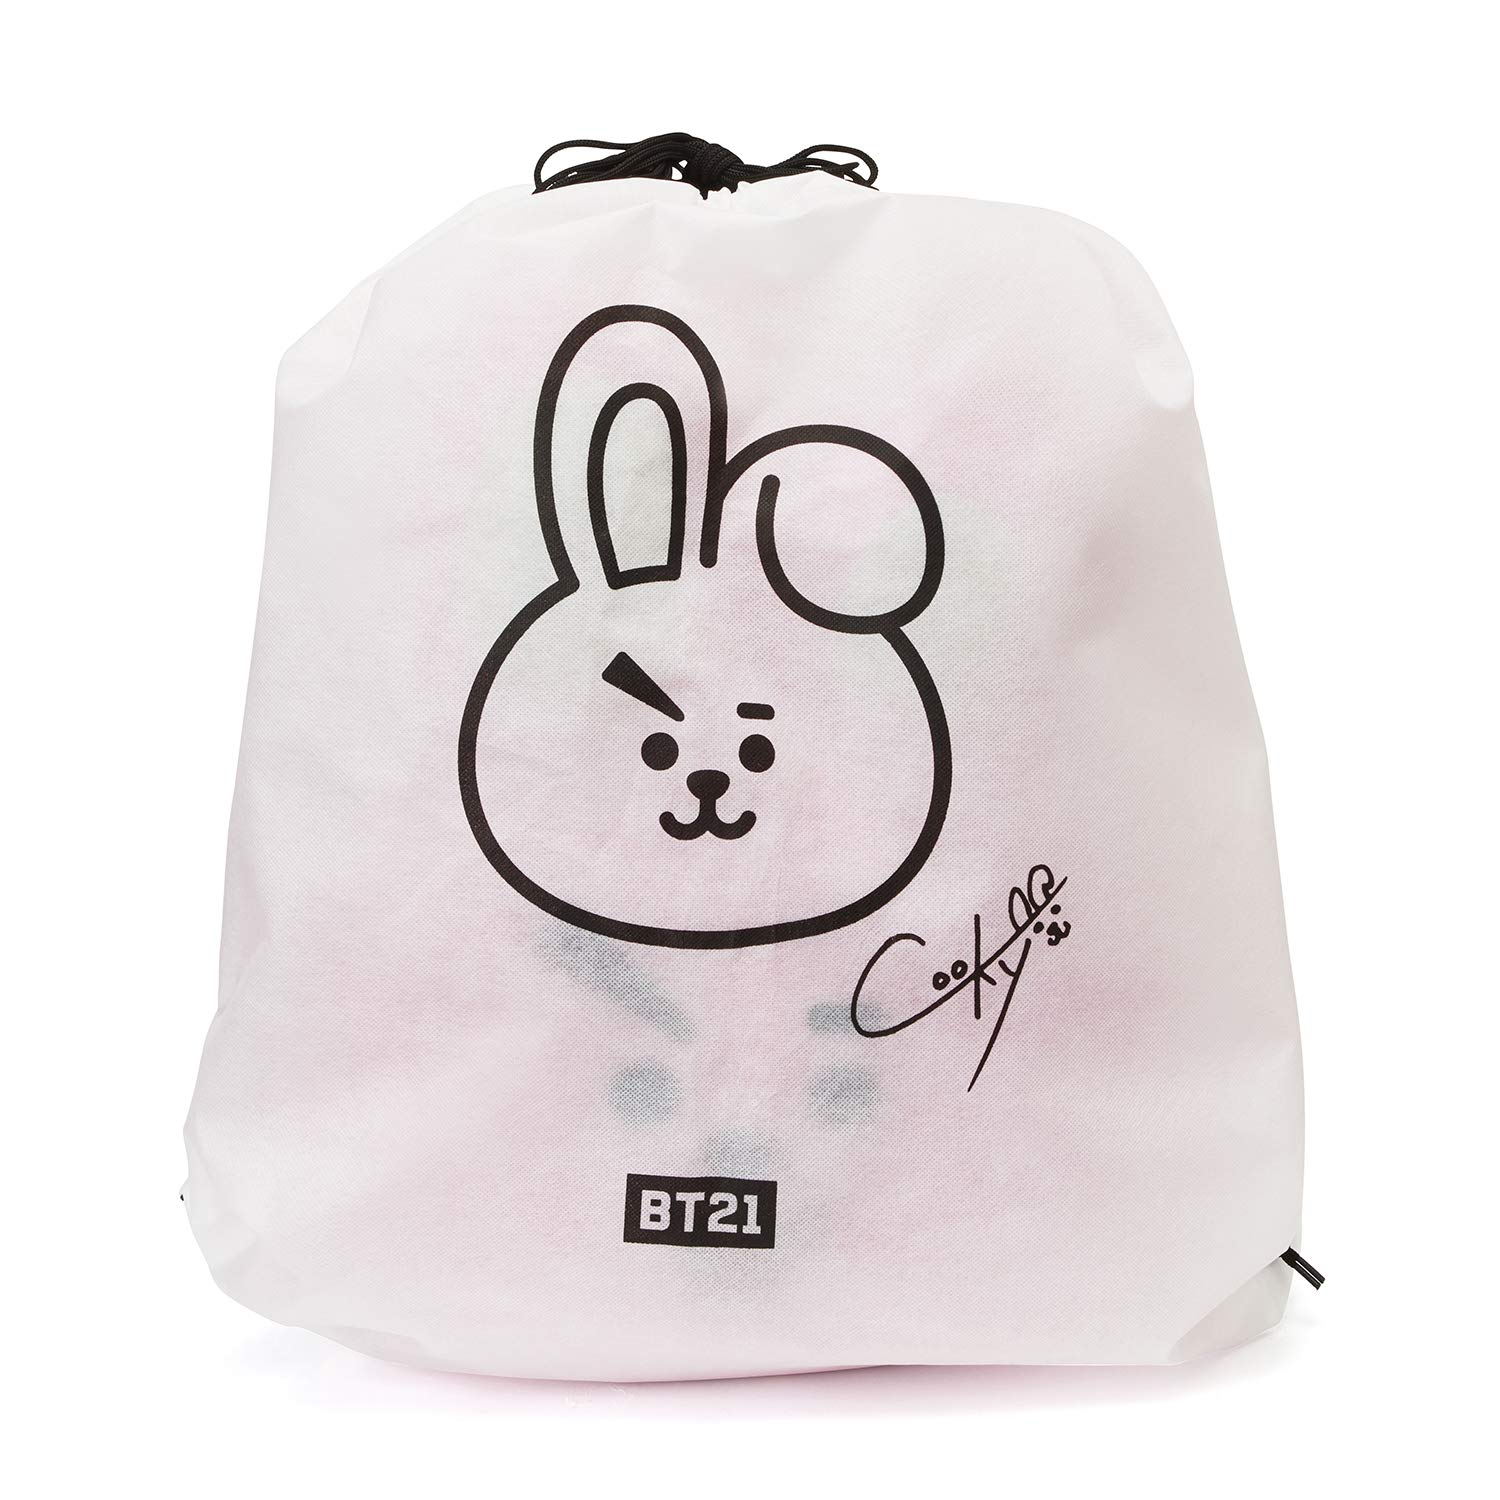 LINE FRIENDS BT21 Official Merchandise Cooky Smile Decorative Throw Pillows Cushion, 11 Inch by LINE FRIENDS (Image #7)